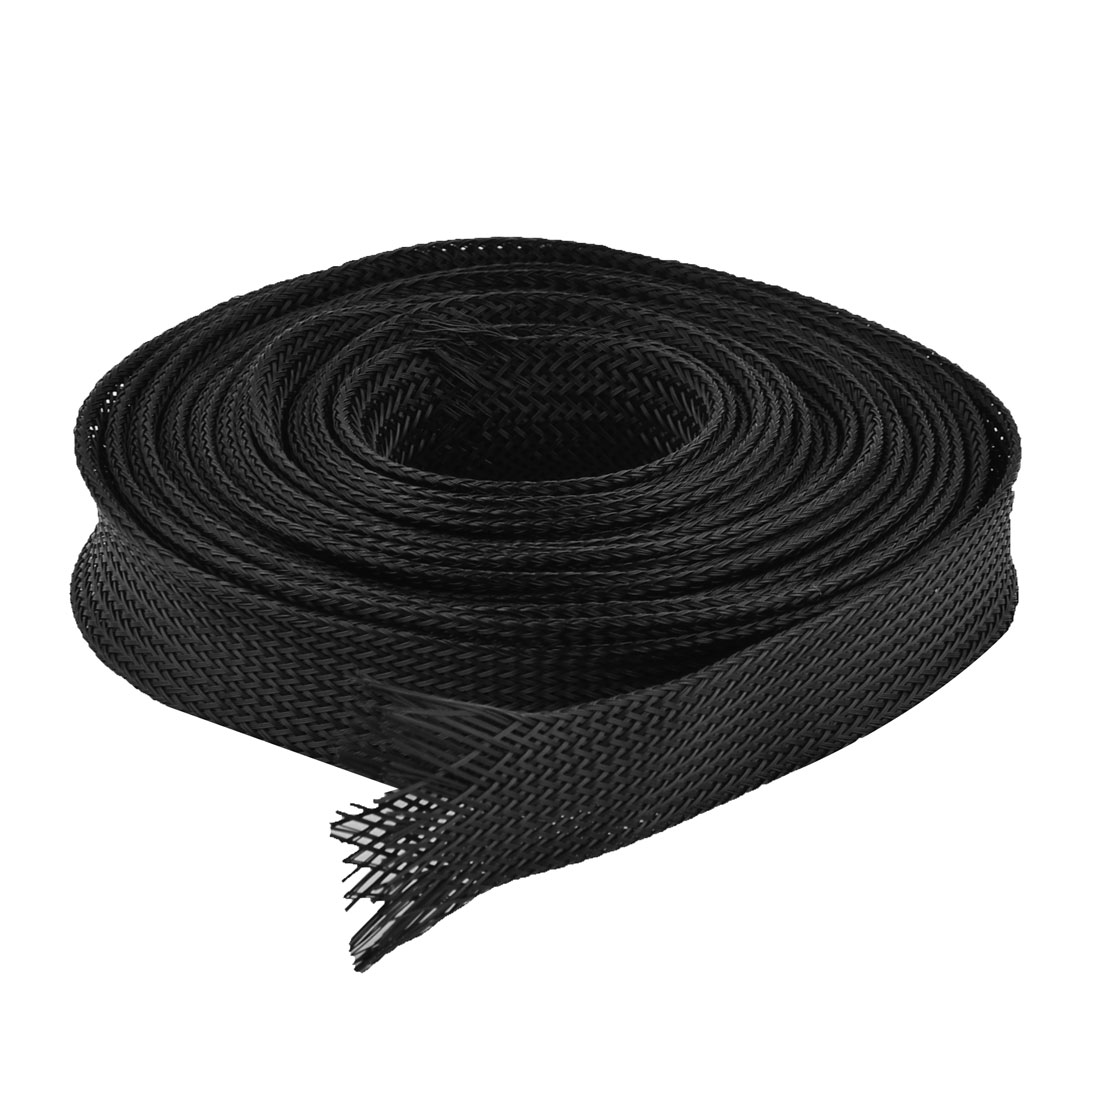 20Ft Long 22mm Wide Nylon Braided Elastic Expandable Sleeving Cable Harness Black